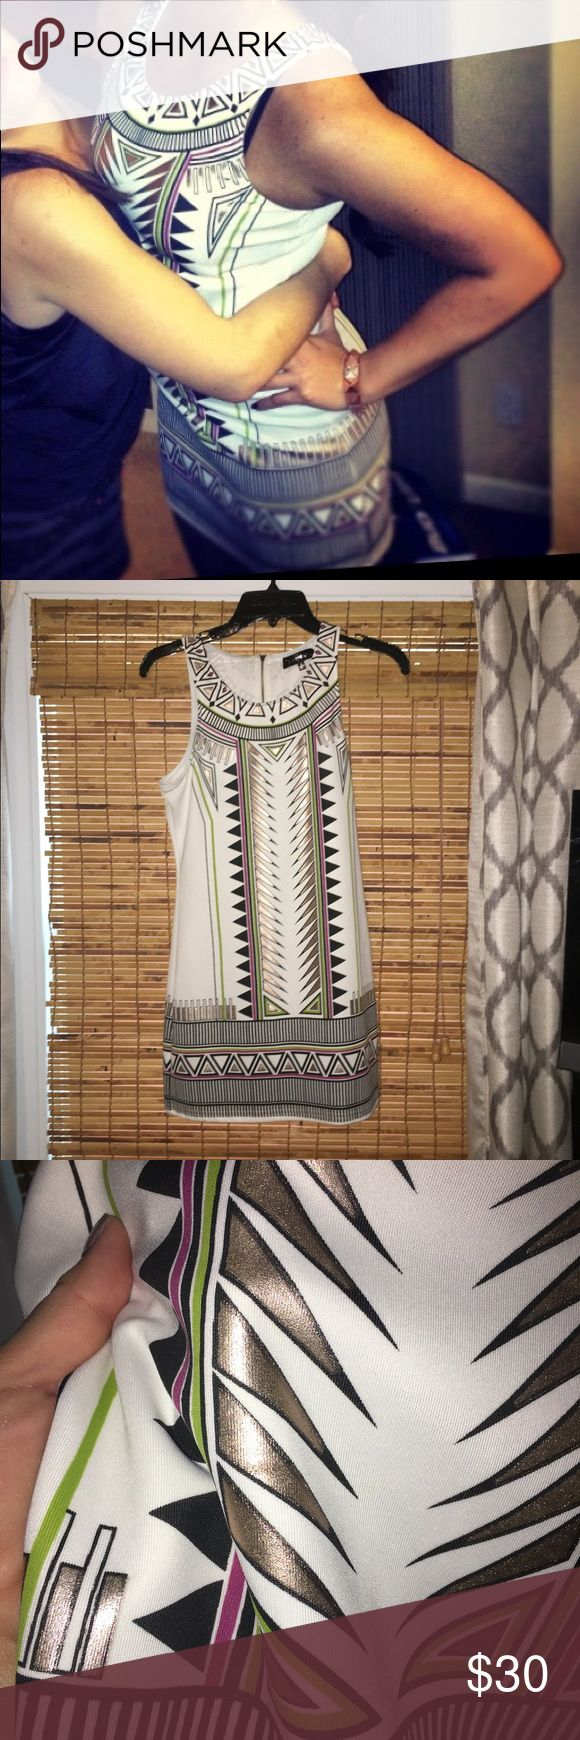 White Aztec print metallic dress This dress looks and feels expensive! Perfect for a night out with the girls. It's a size large but fits more like a medium. I got it from a boutique and have only worn it once (New Years eve). It's in great, like-new condition. Dresses Mini